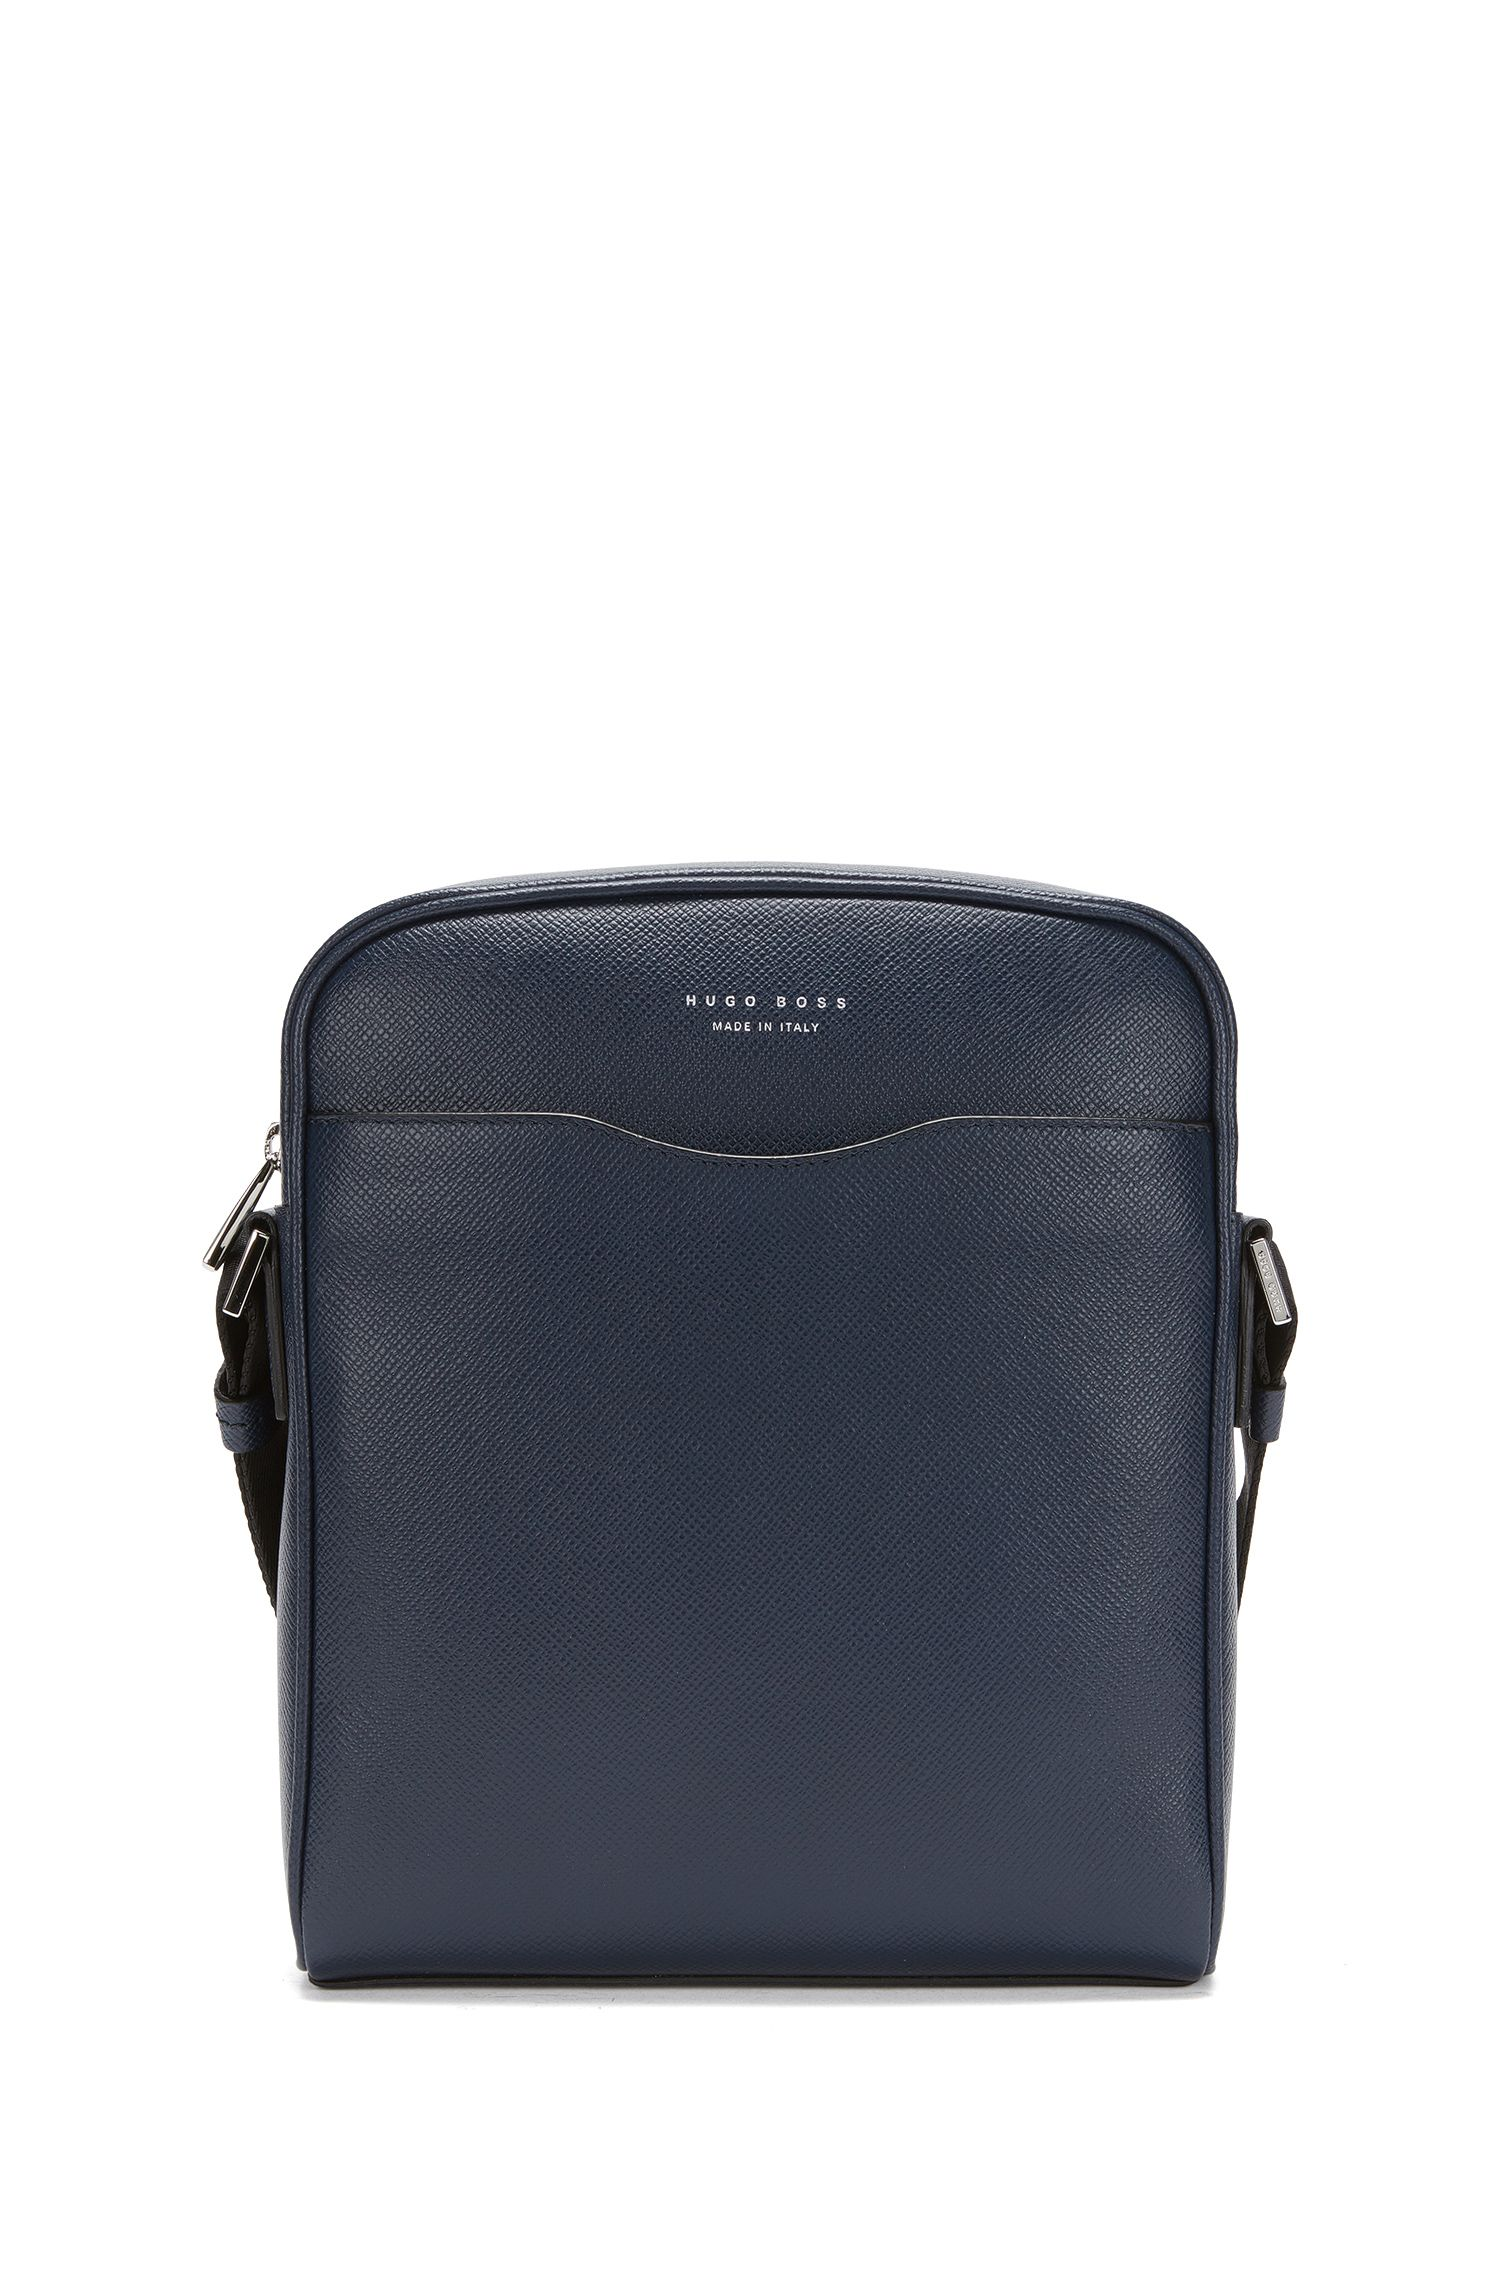 Signature Collection reporter bag in palmellato leather